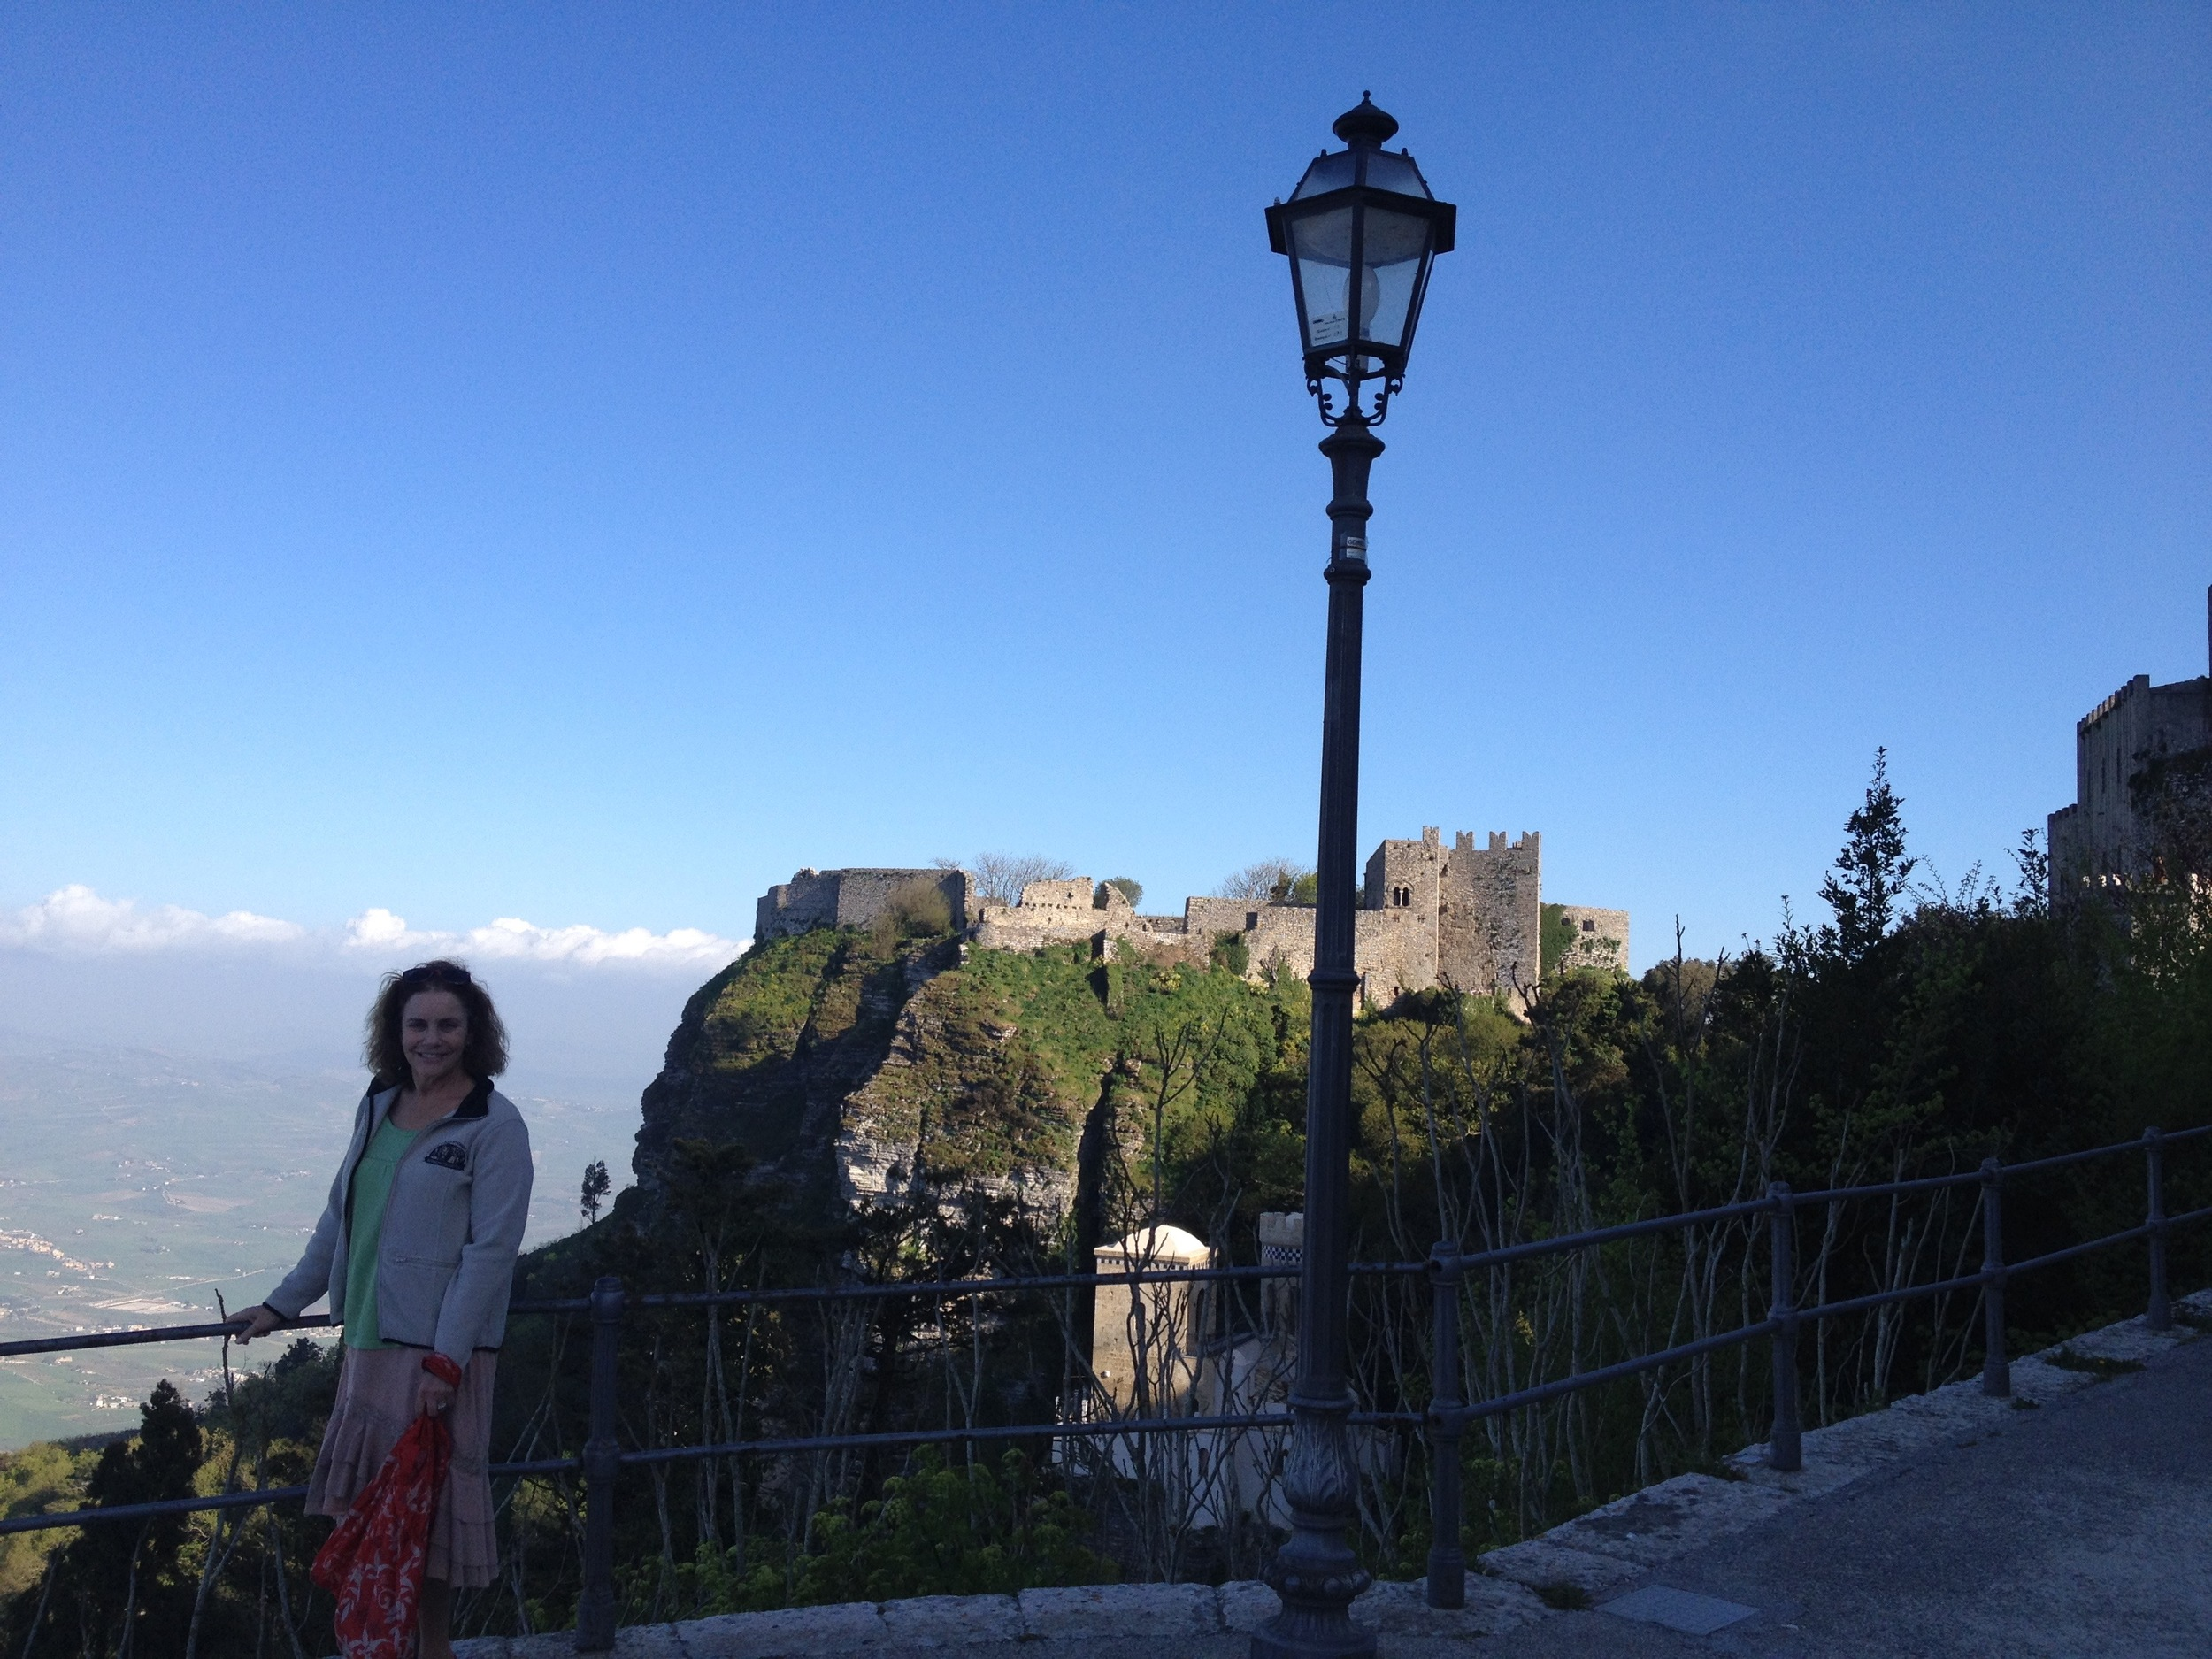 High up in the clouds in Erice with views as if you were piloting a plane.